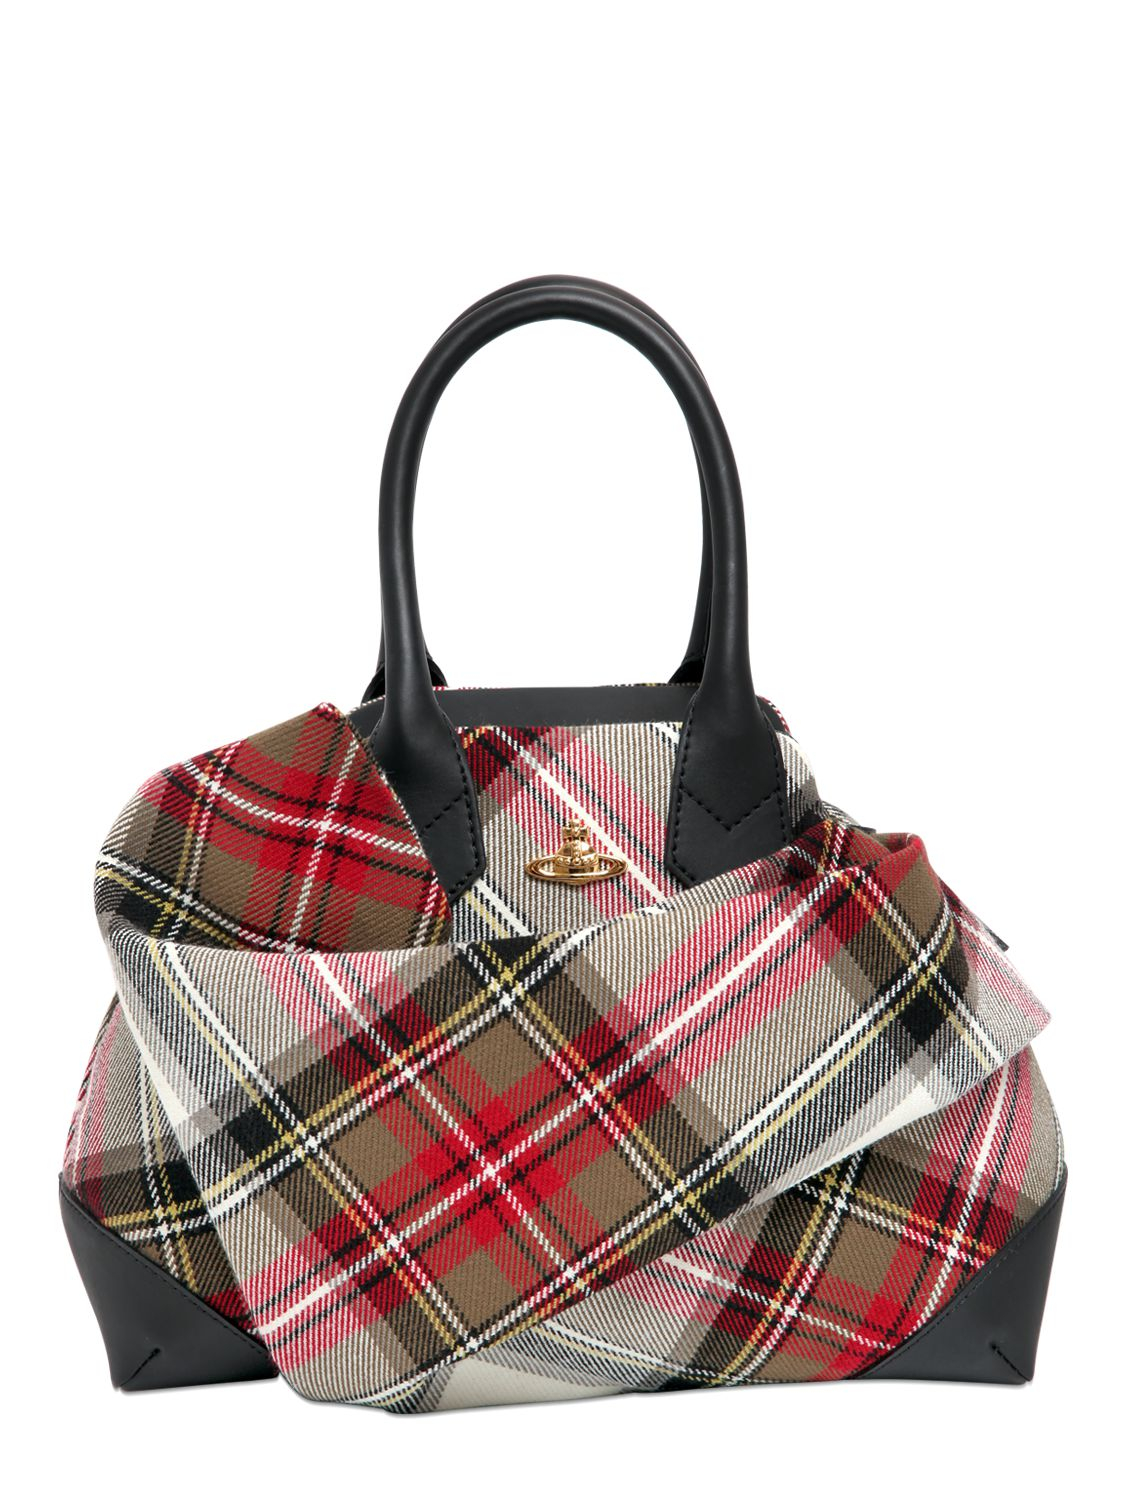 vivienne westwood plaid cotton canvas top handle bag in red multi black lyst. Black Bedroom Furniture Sets. Home Design Ideas